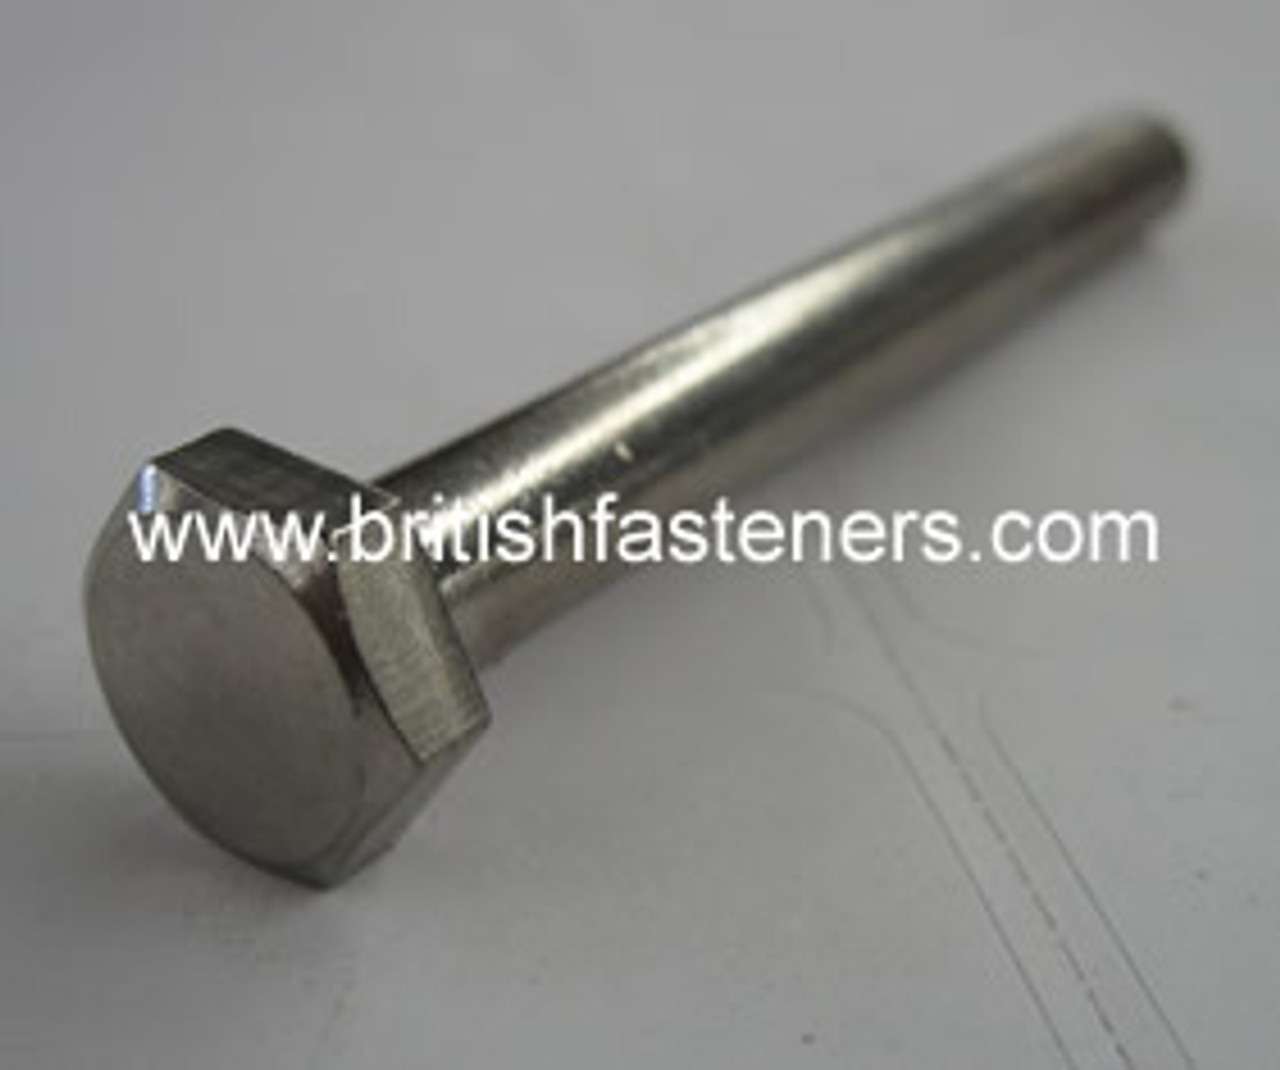 """Stainless Bolt BSC Hex 5/16 x 4"""" - (6445)"""